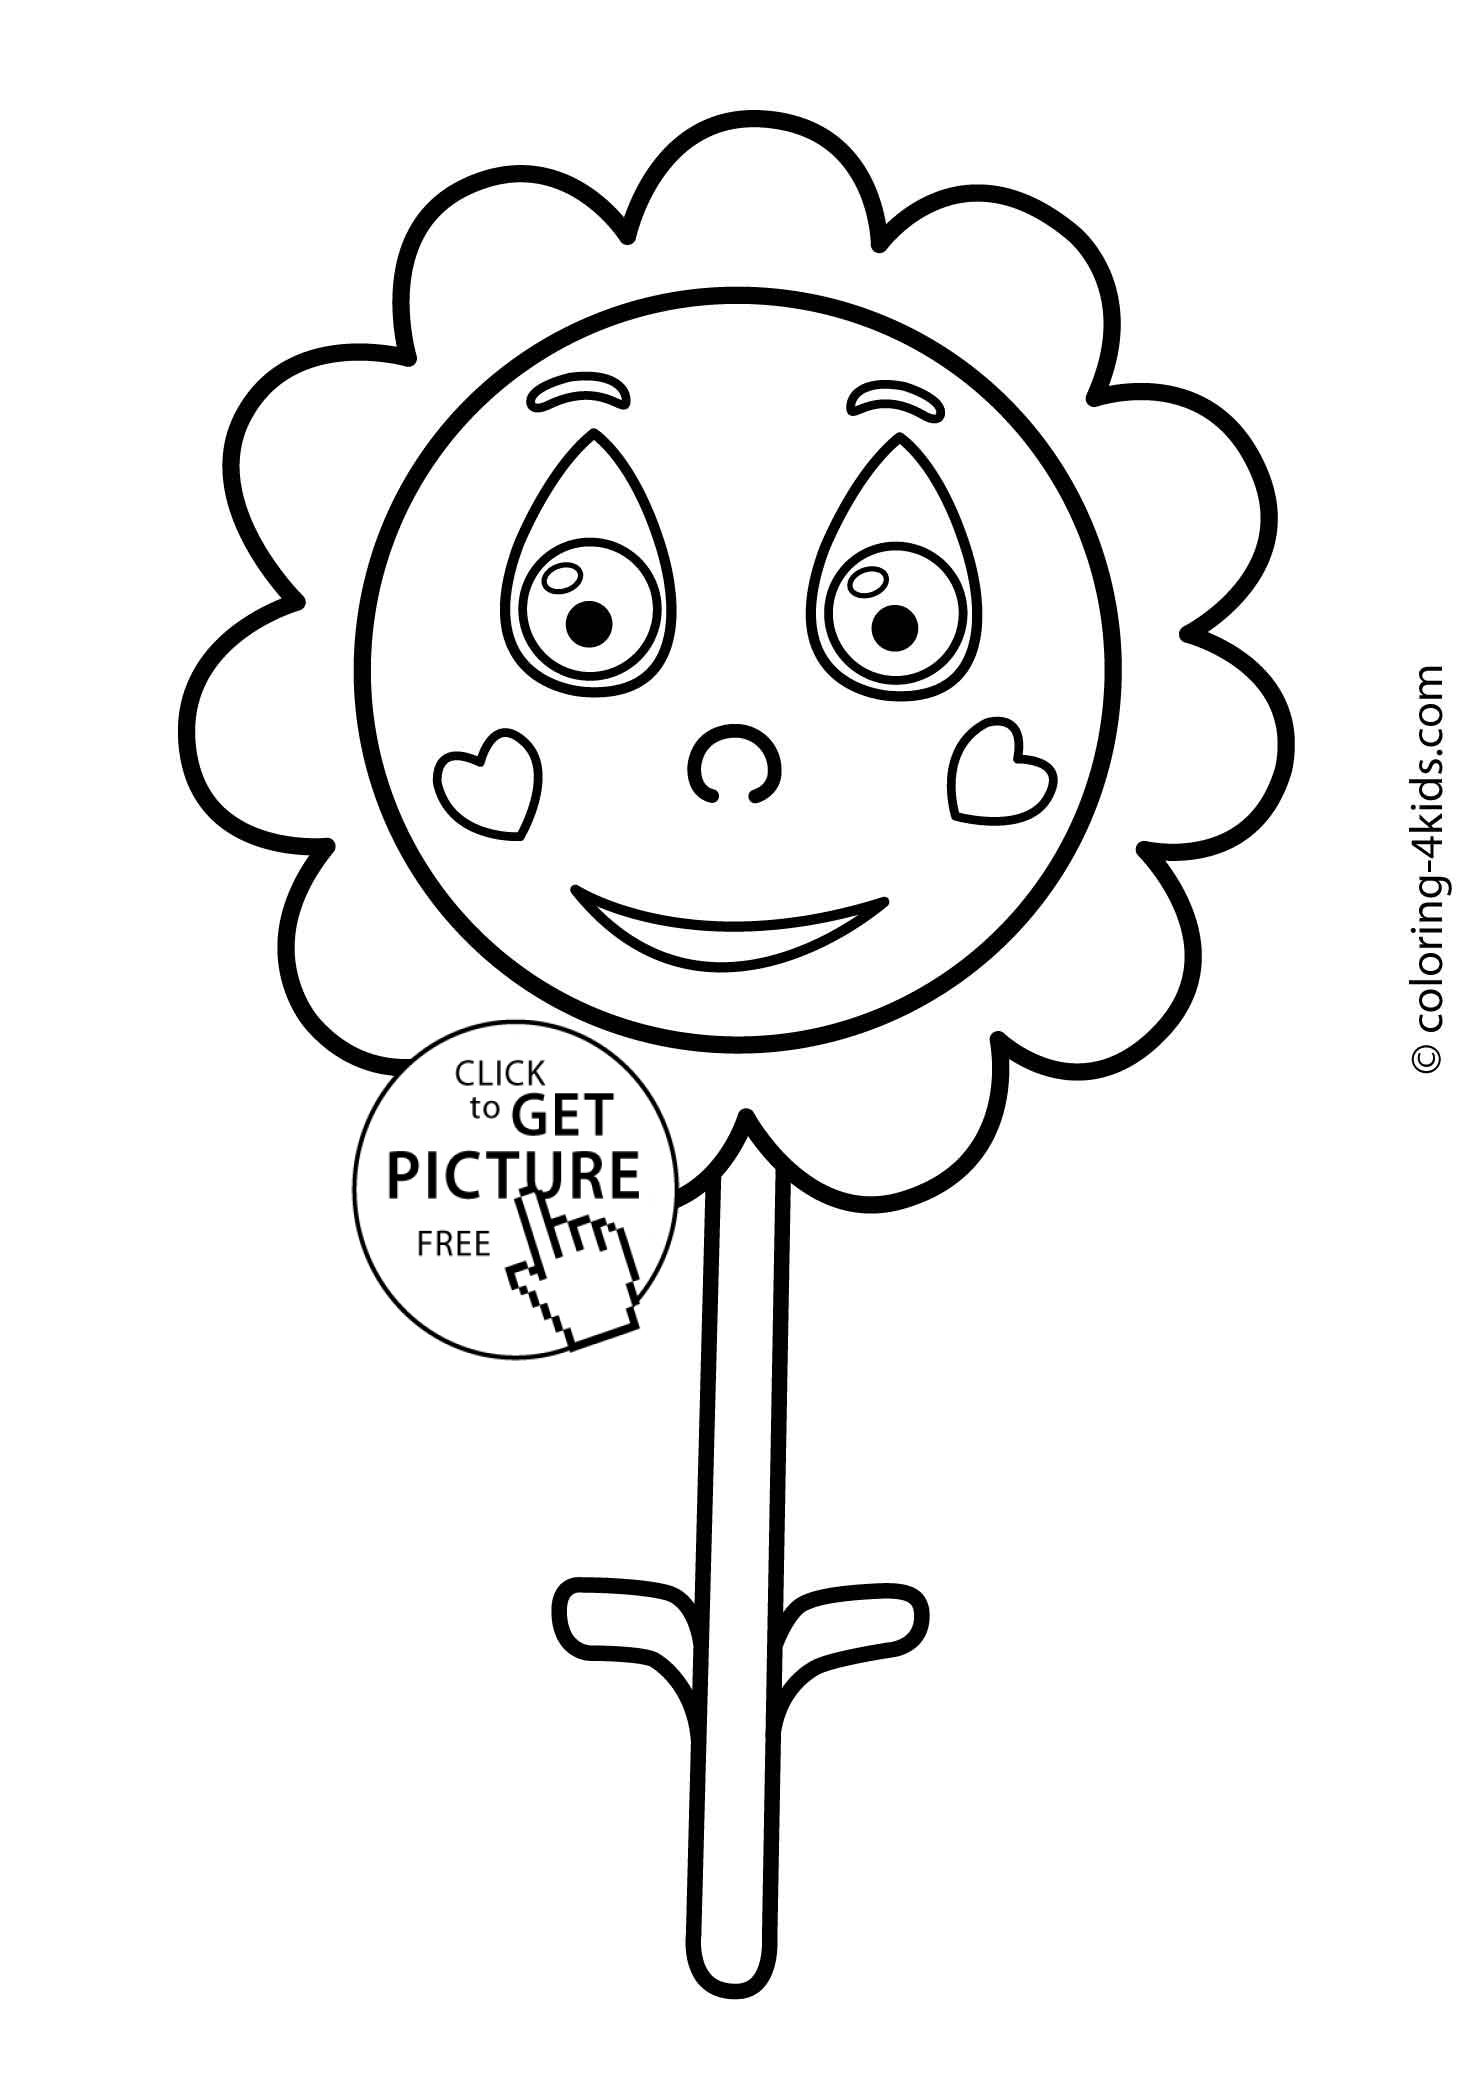 Flower coloring pages for kids, printable, 10